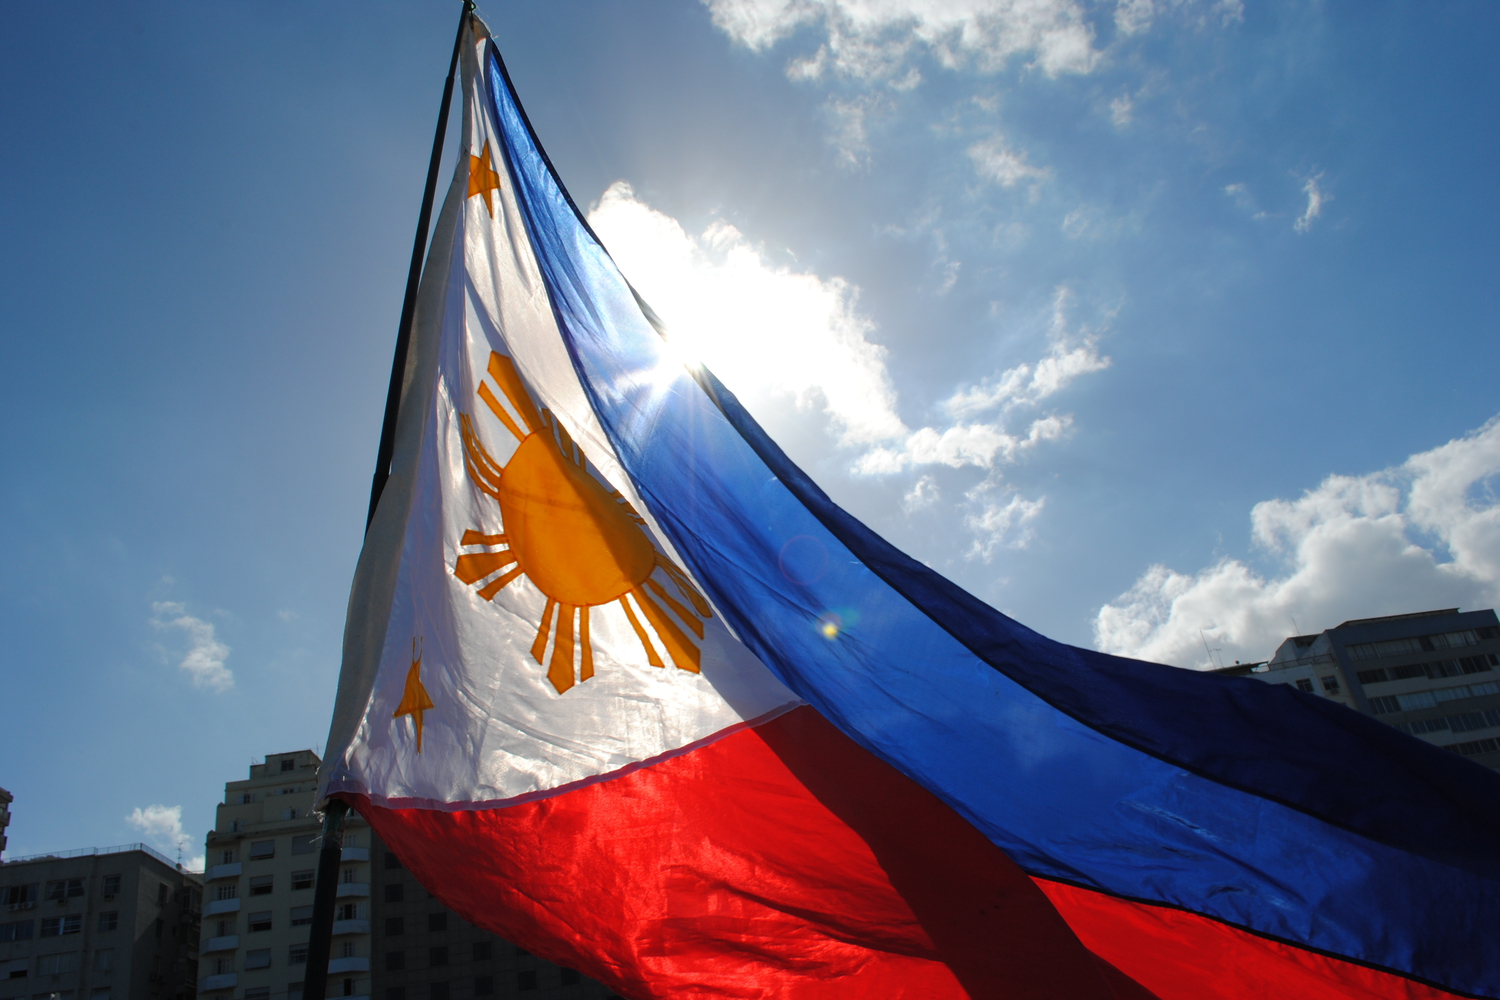 Philippine Stock Exchange Wants to Be the Site for Crypto Trading When It's Approved: Report